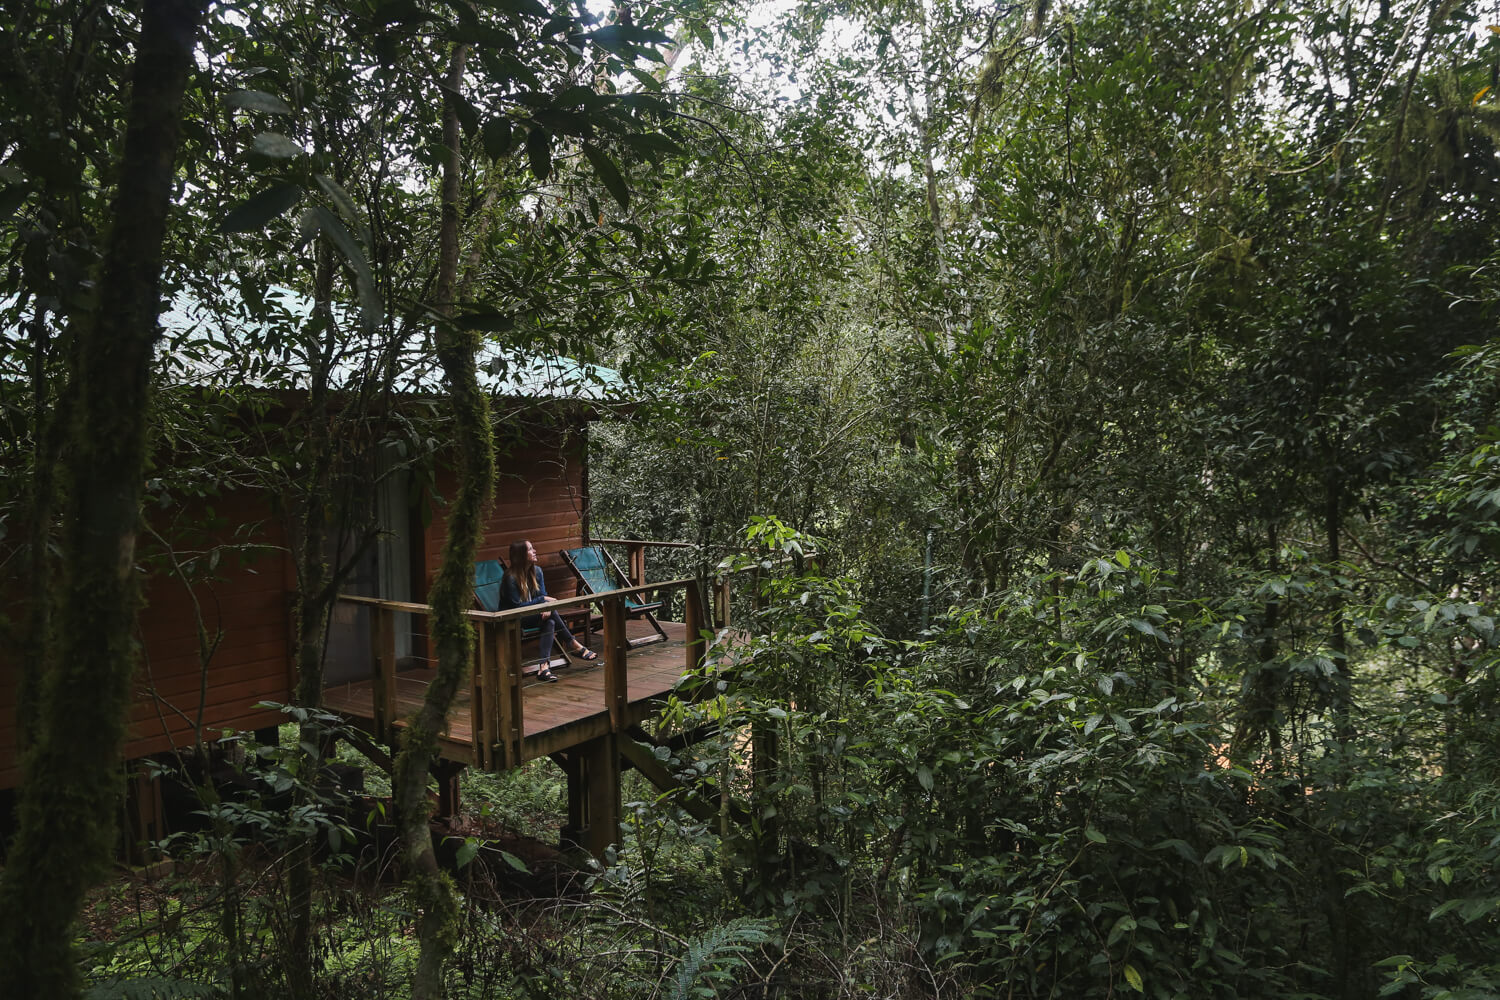 Our room at the Mocona Virgen Lodge was a jungle tree house